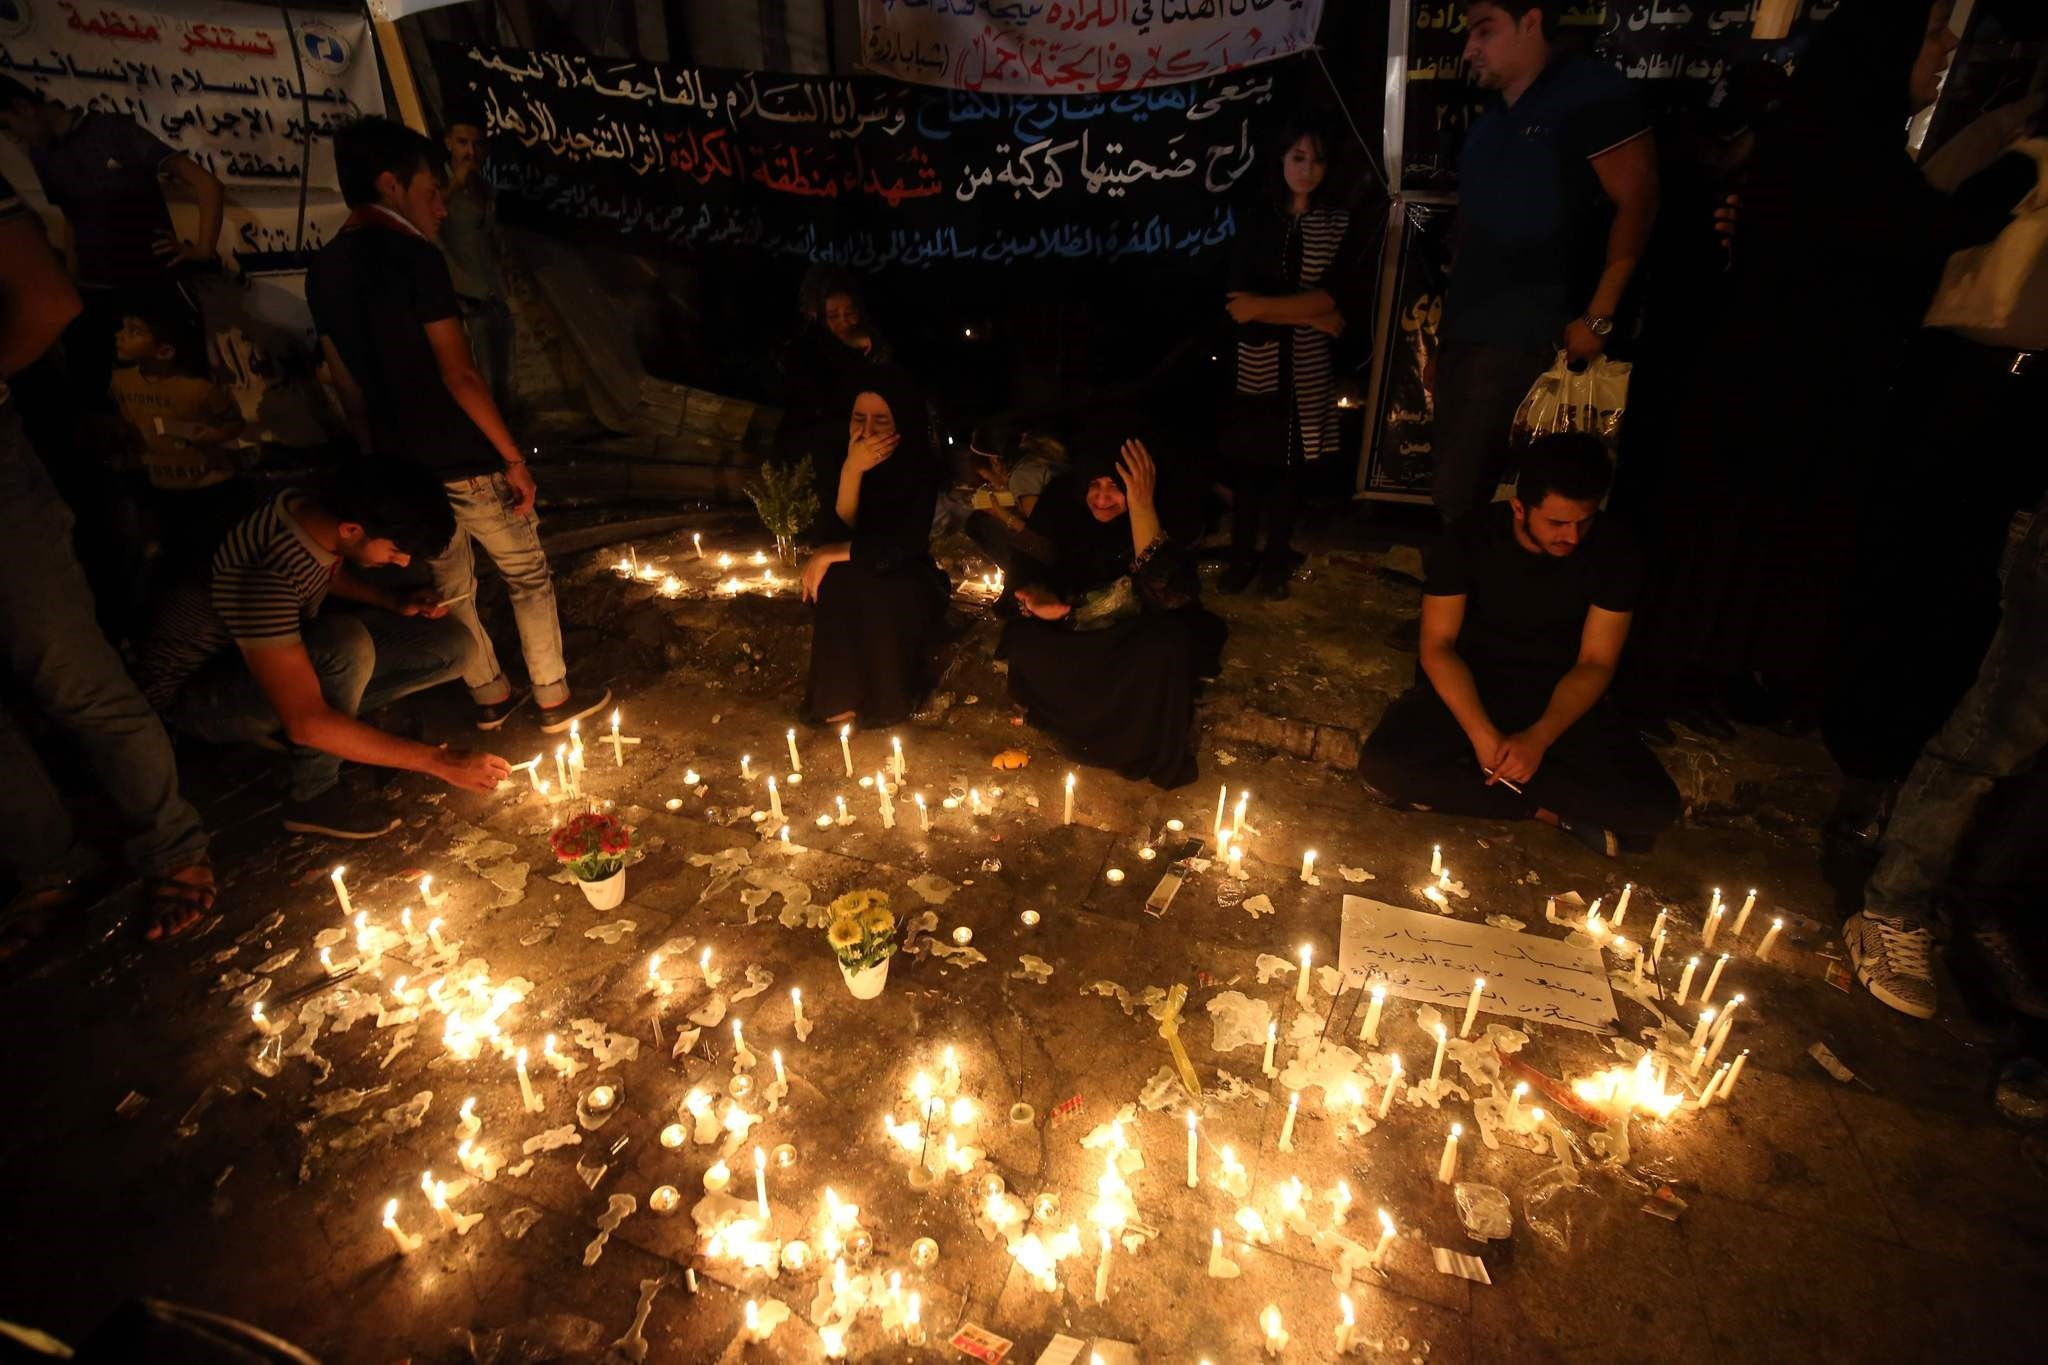 Iraqis light candles on July 5, 2016 at the site of a suicide car bomb attack which took place early on July 3 in Baghdad's Karrada neighbourhood killing at least 213 people and wounding more than 200. (AFP Photo)